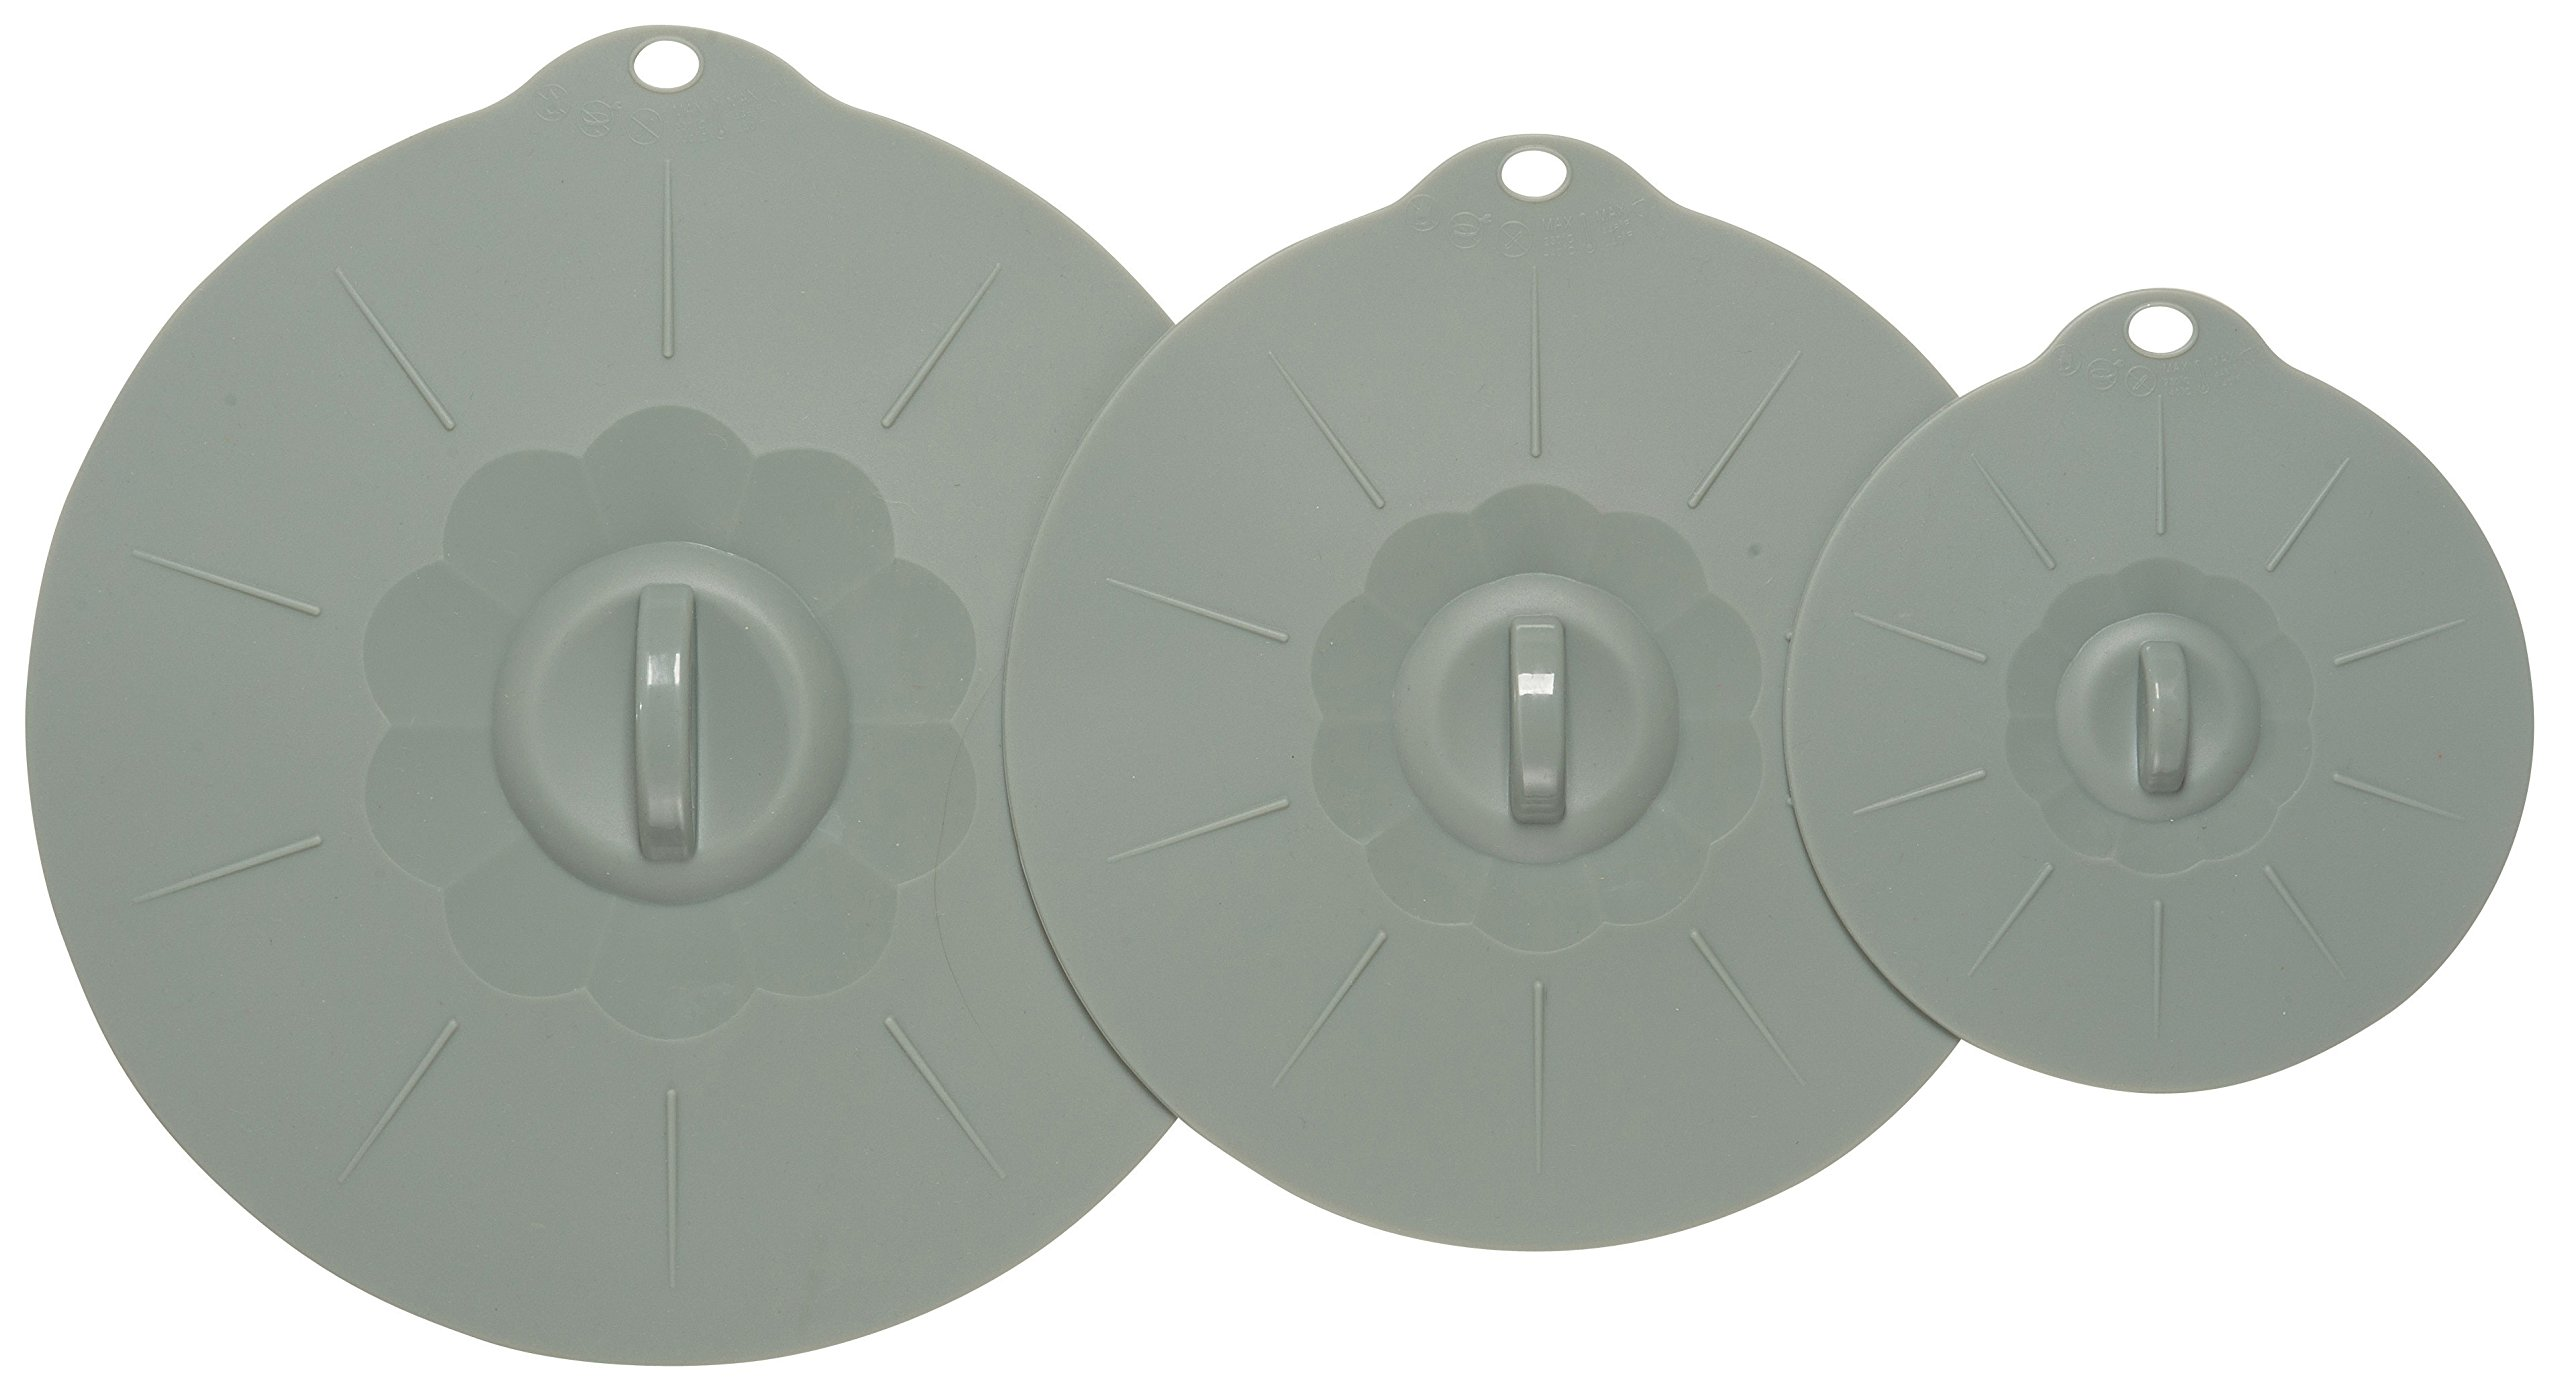 Now Designs 5021422 Silicone Suction Lids, Gray, Set of 3